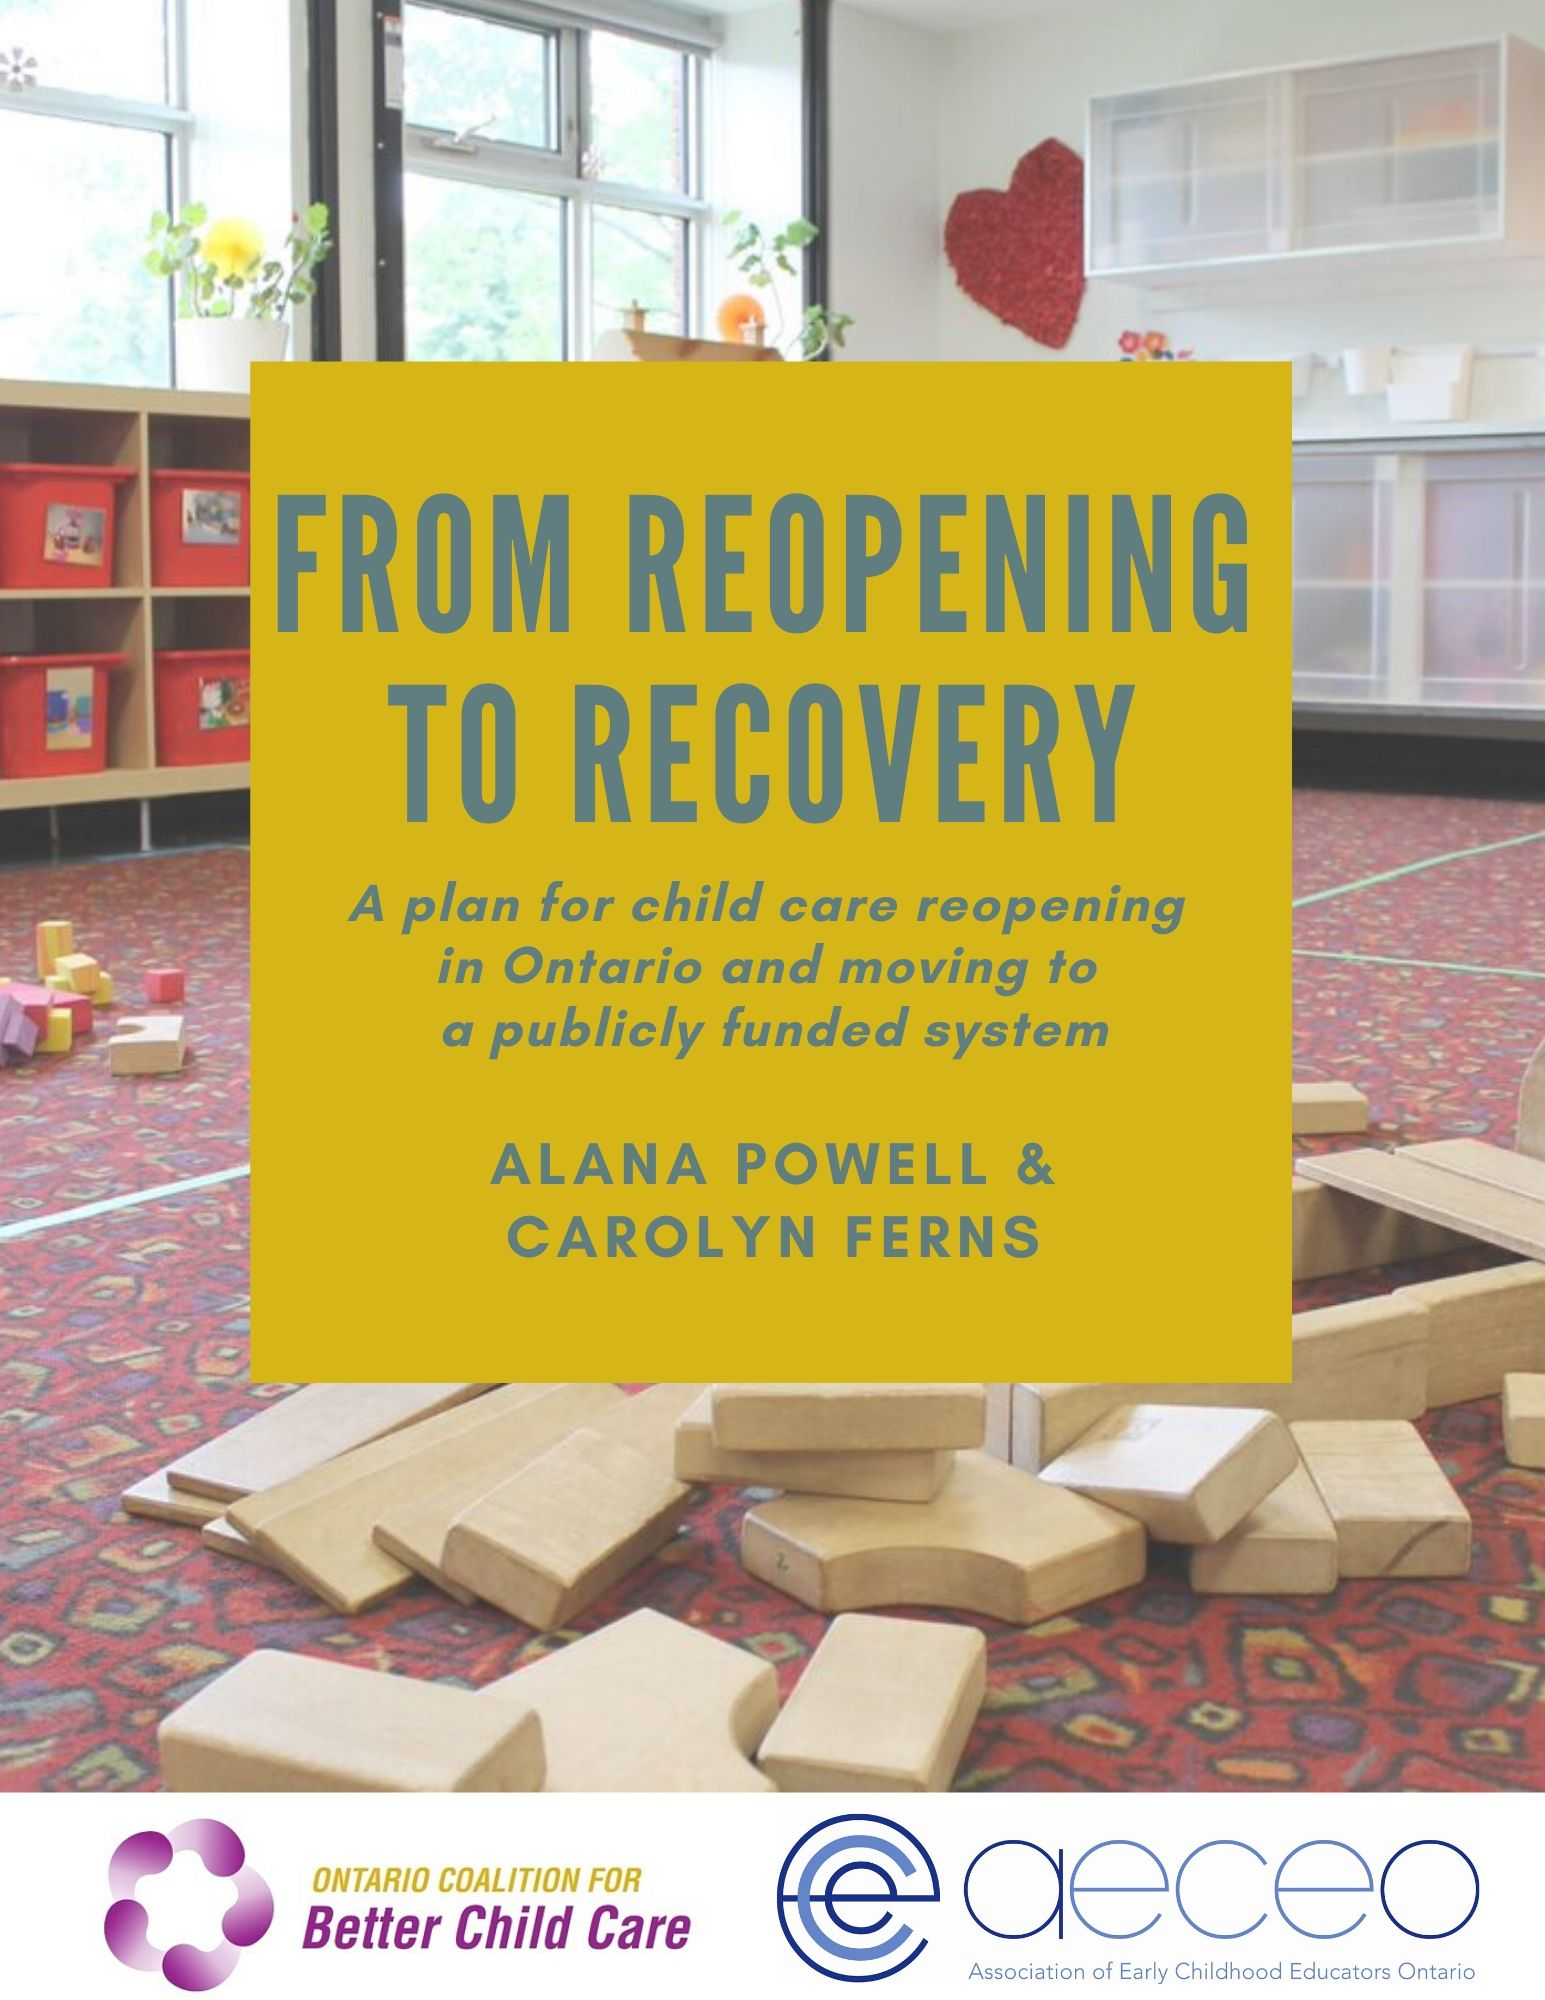 Copy_of_cover_From_Reopening_to_Recovery.jpg